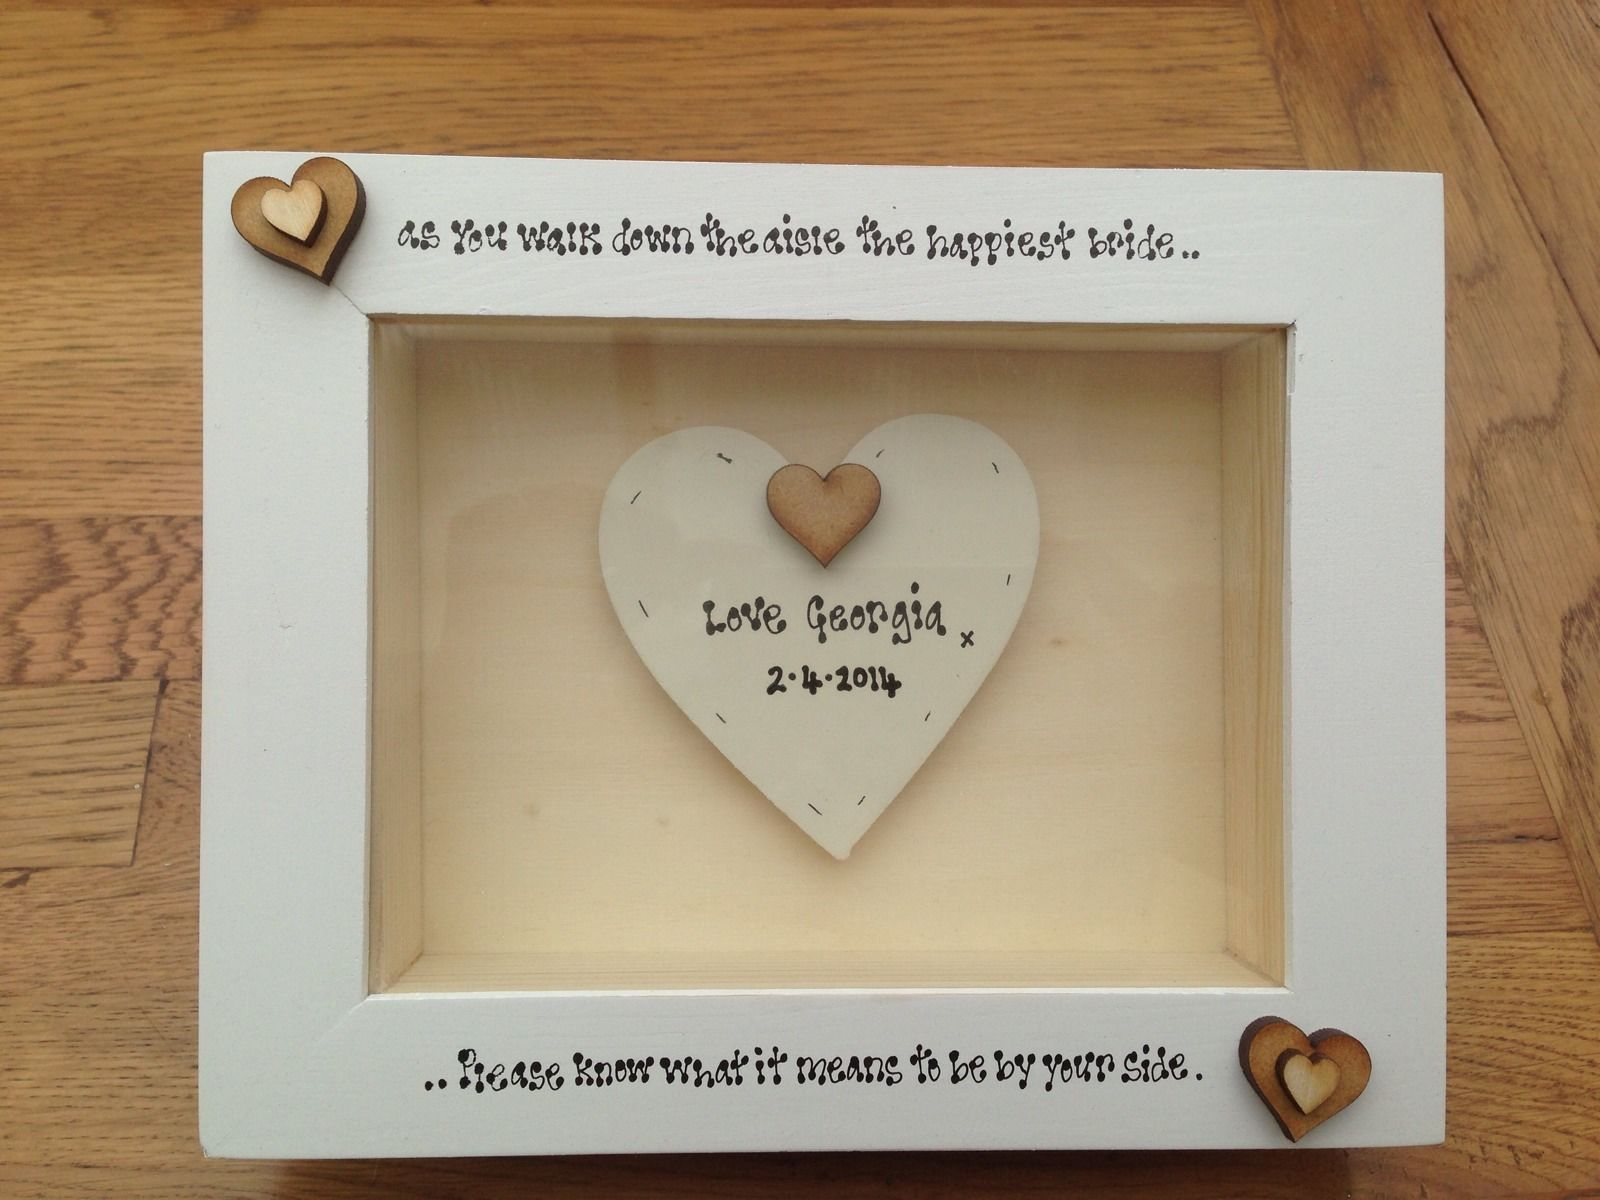 ... Chic Box Frame Gift For Bride On Her Wedding From Bridesmaid